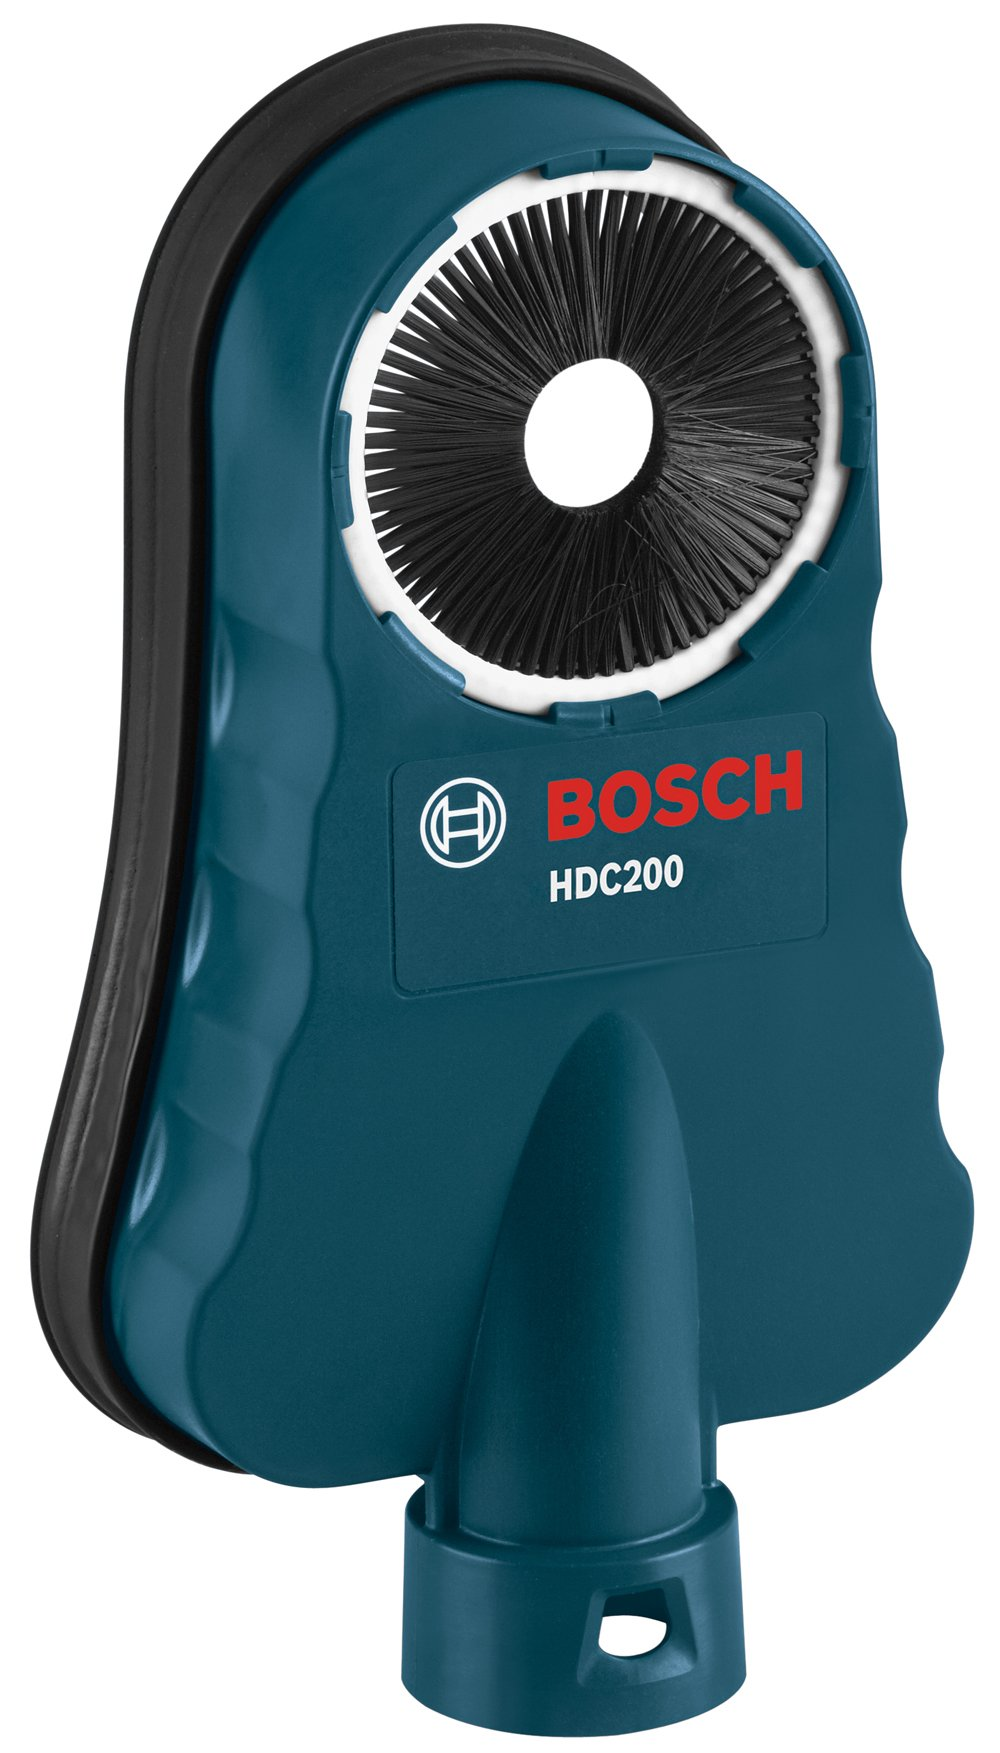 Bosch HDC200 SDS-Max Hammer Dust Collection Attachment by Bosch